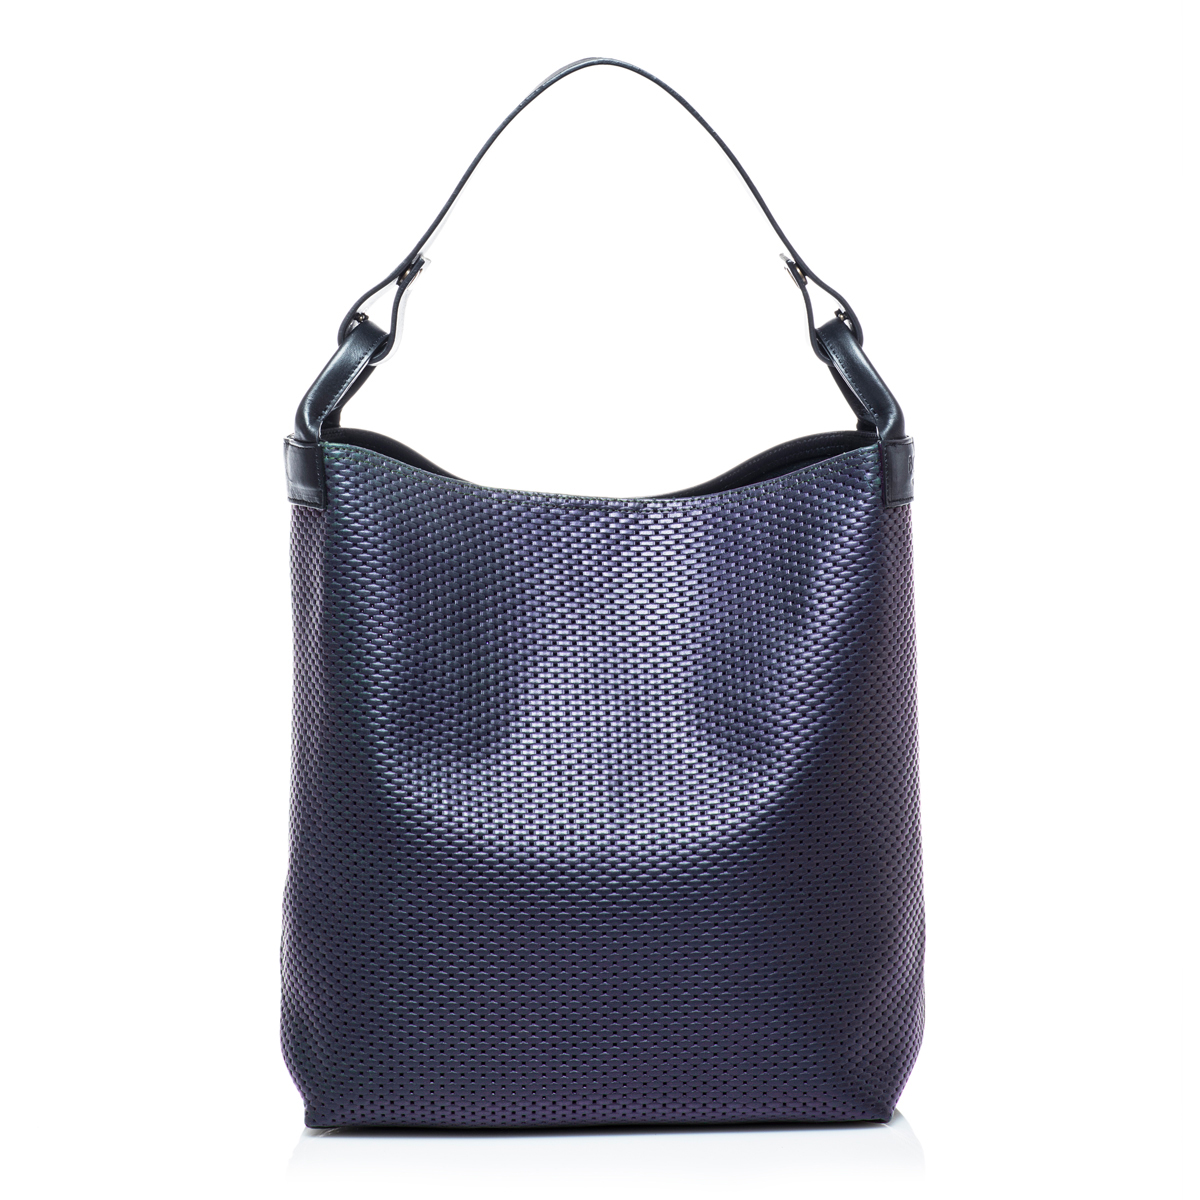 Sac à main en cuir BONNIE & BAG cuir bleu TdraOLF